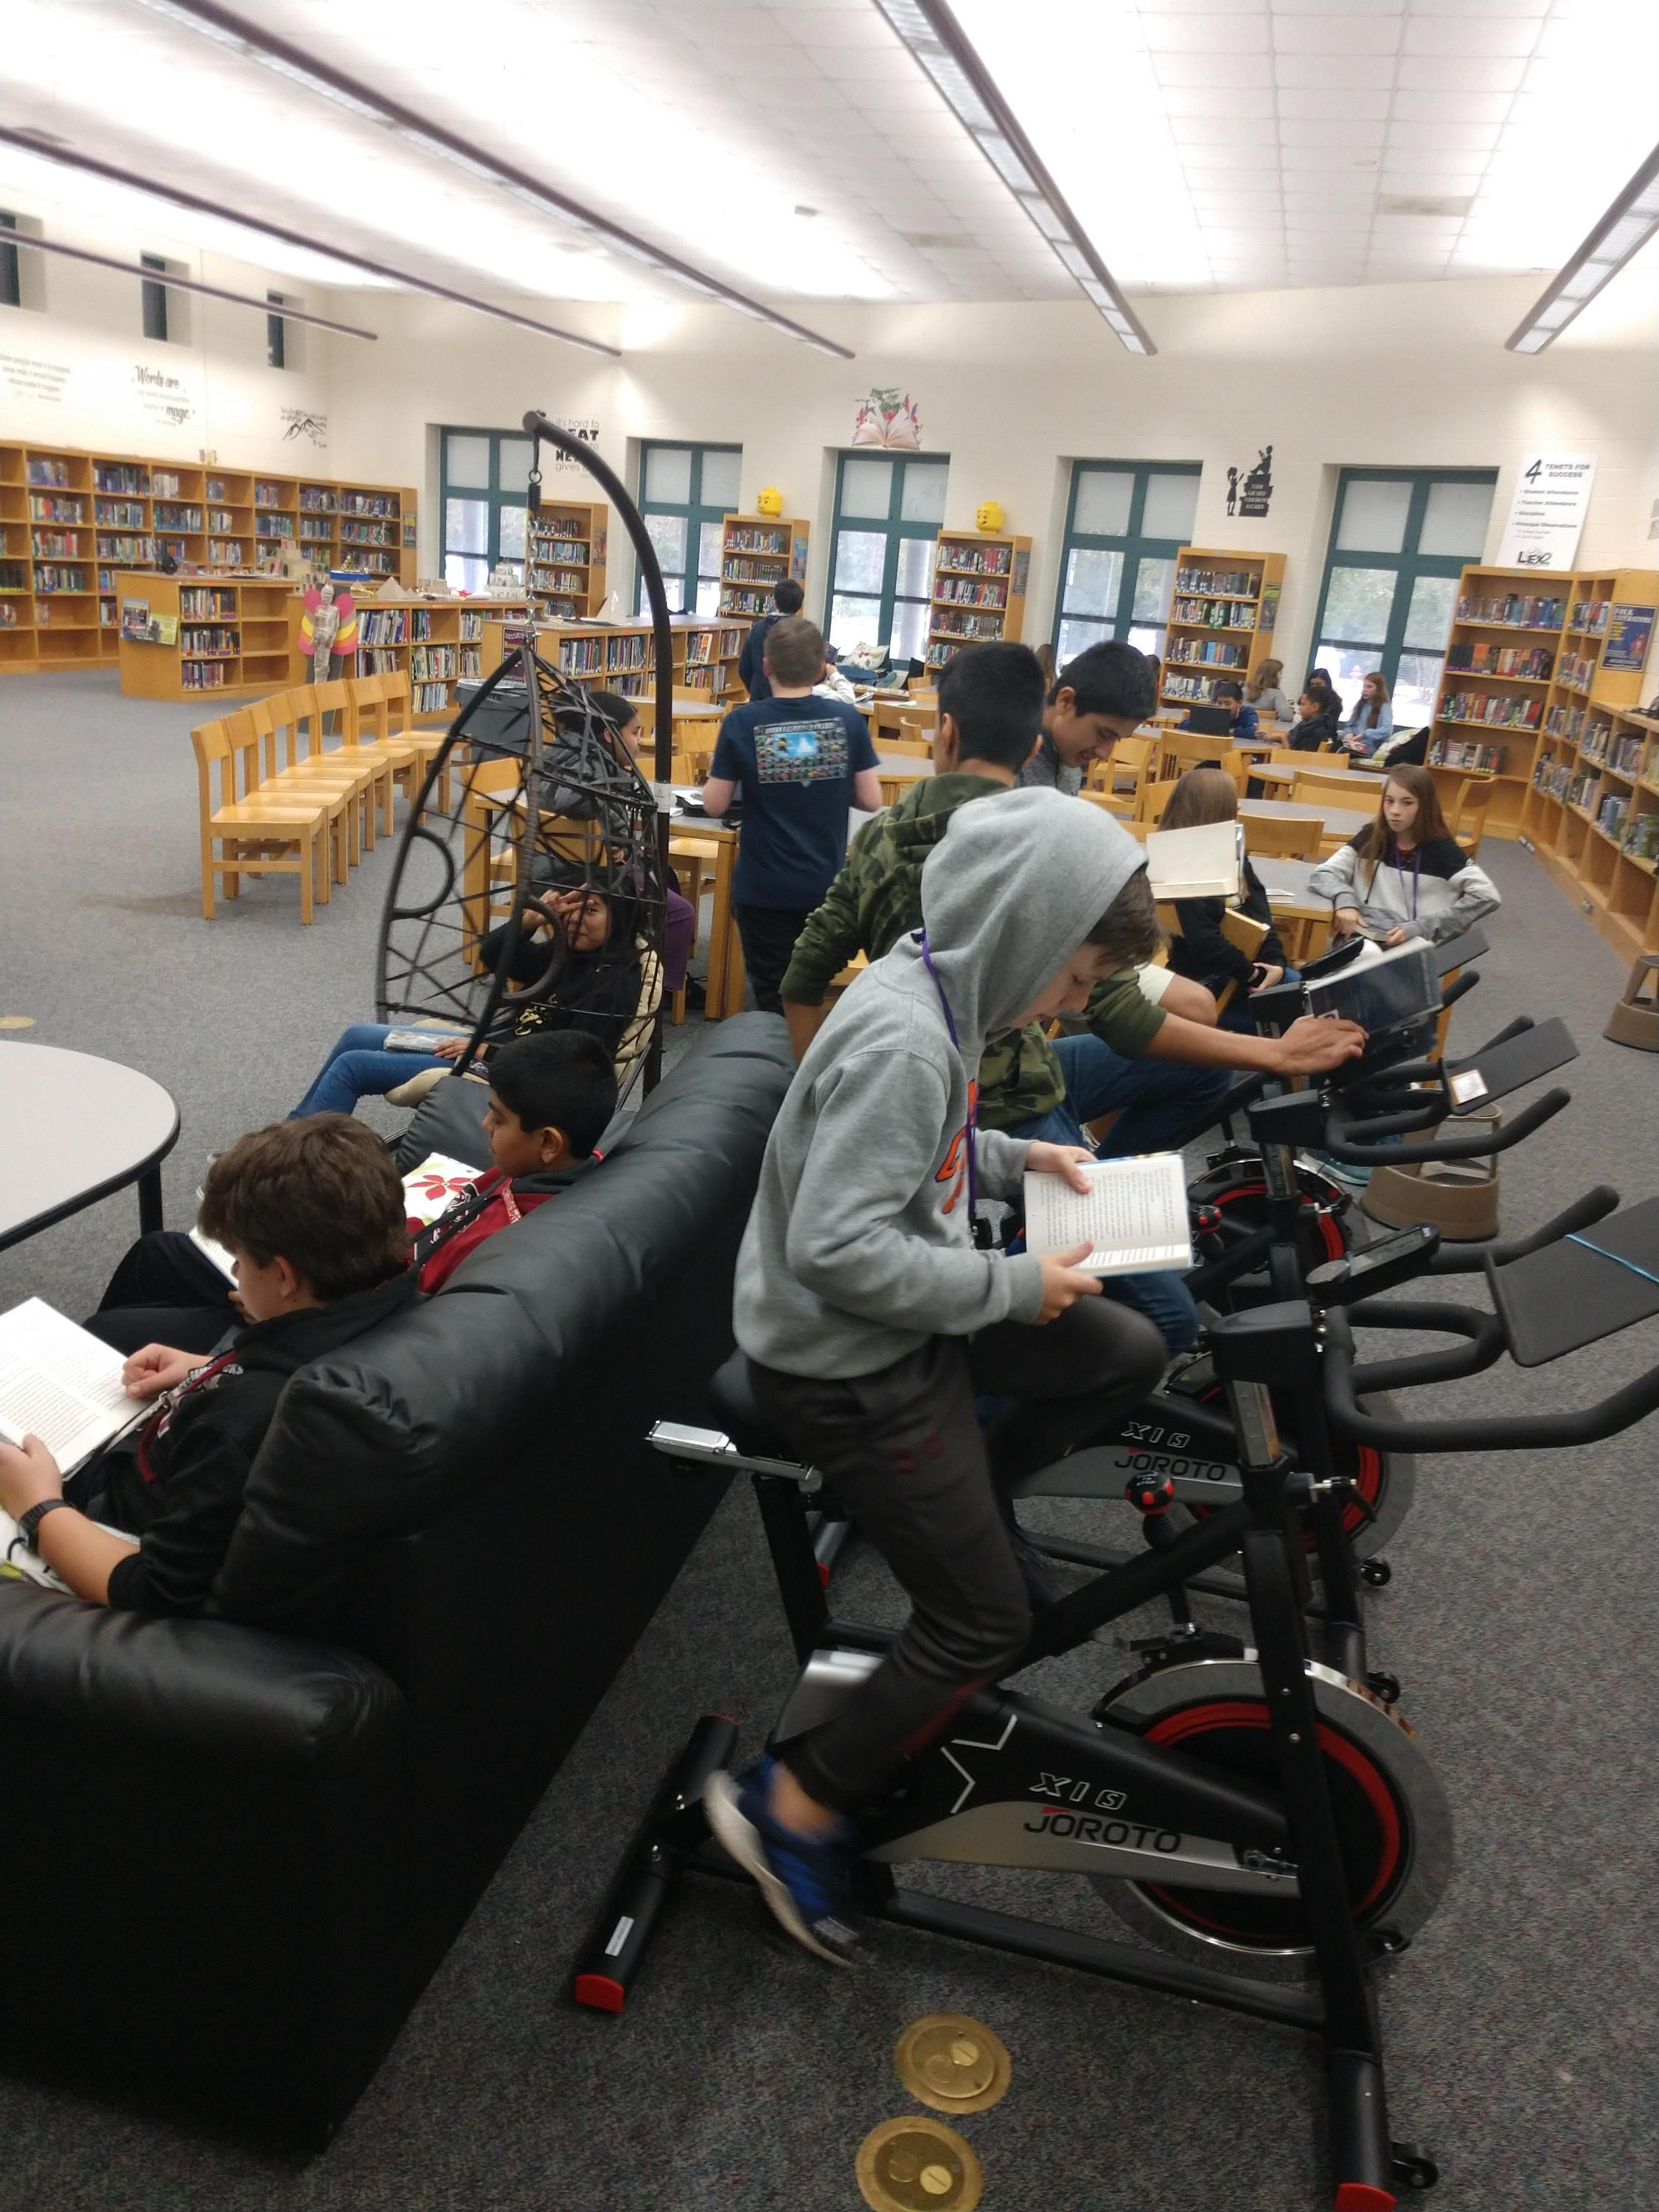 Students enjoying the new reading bikes!